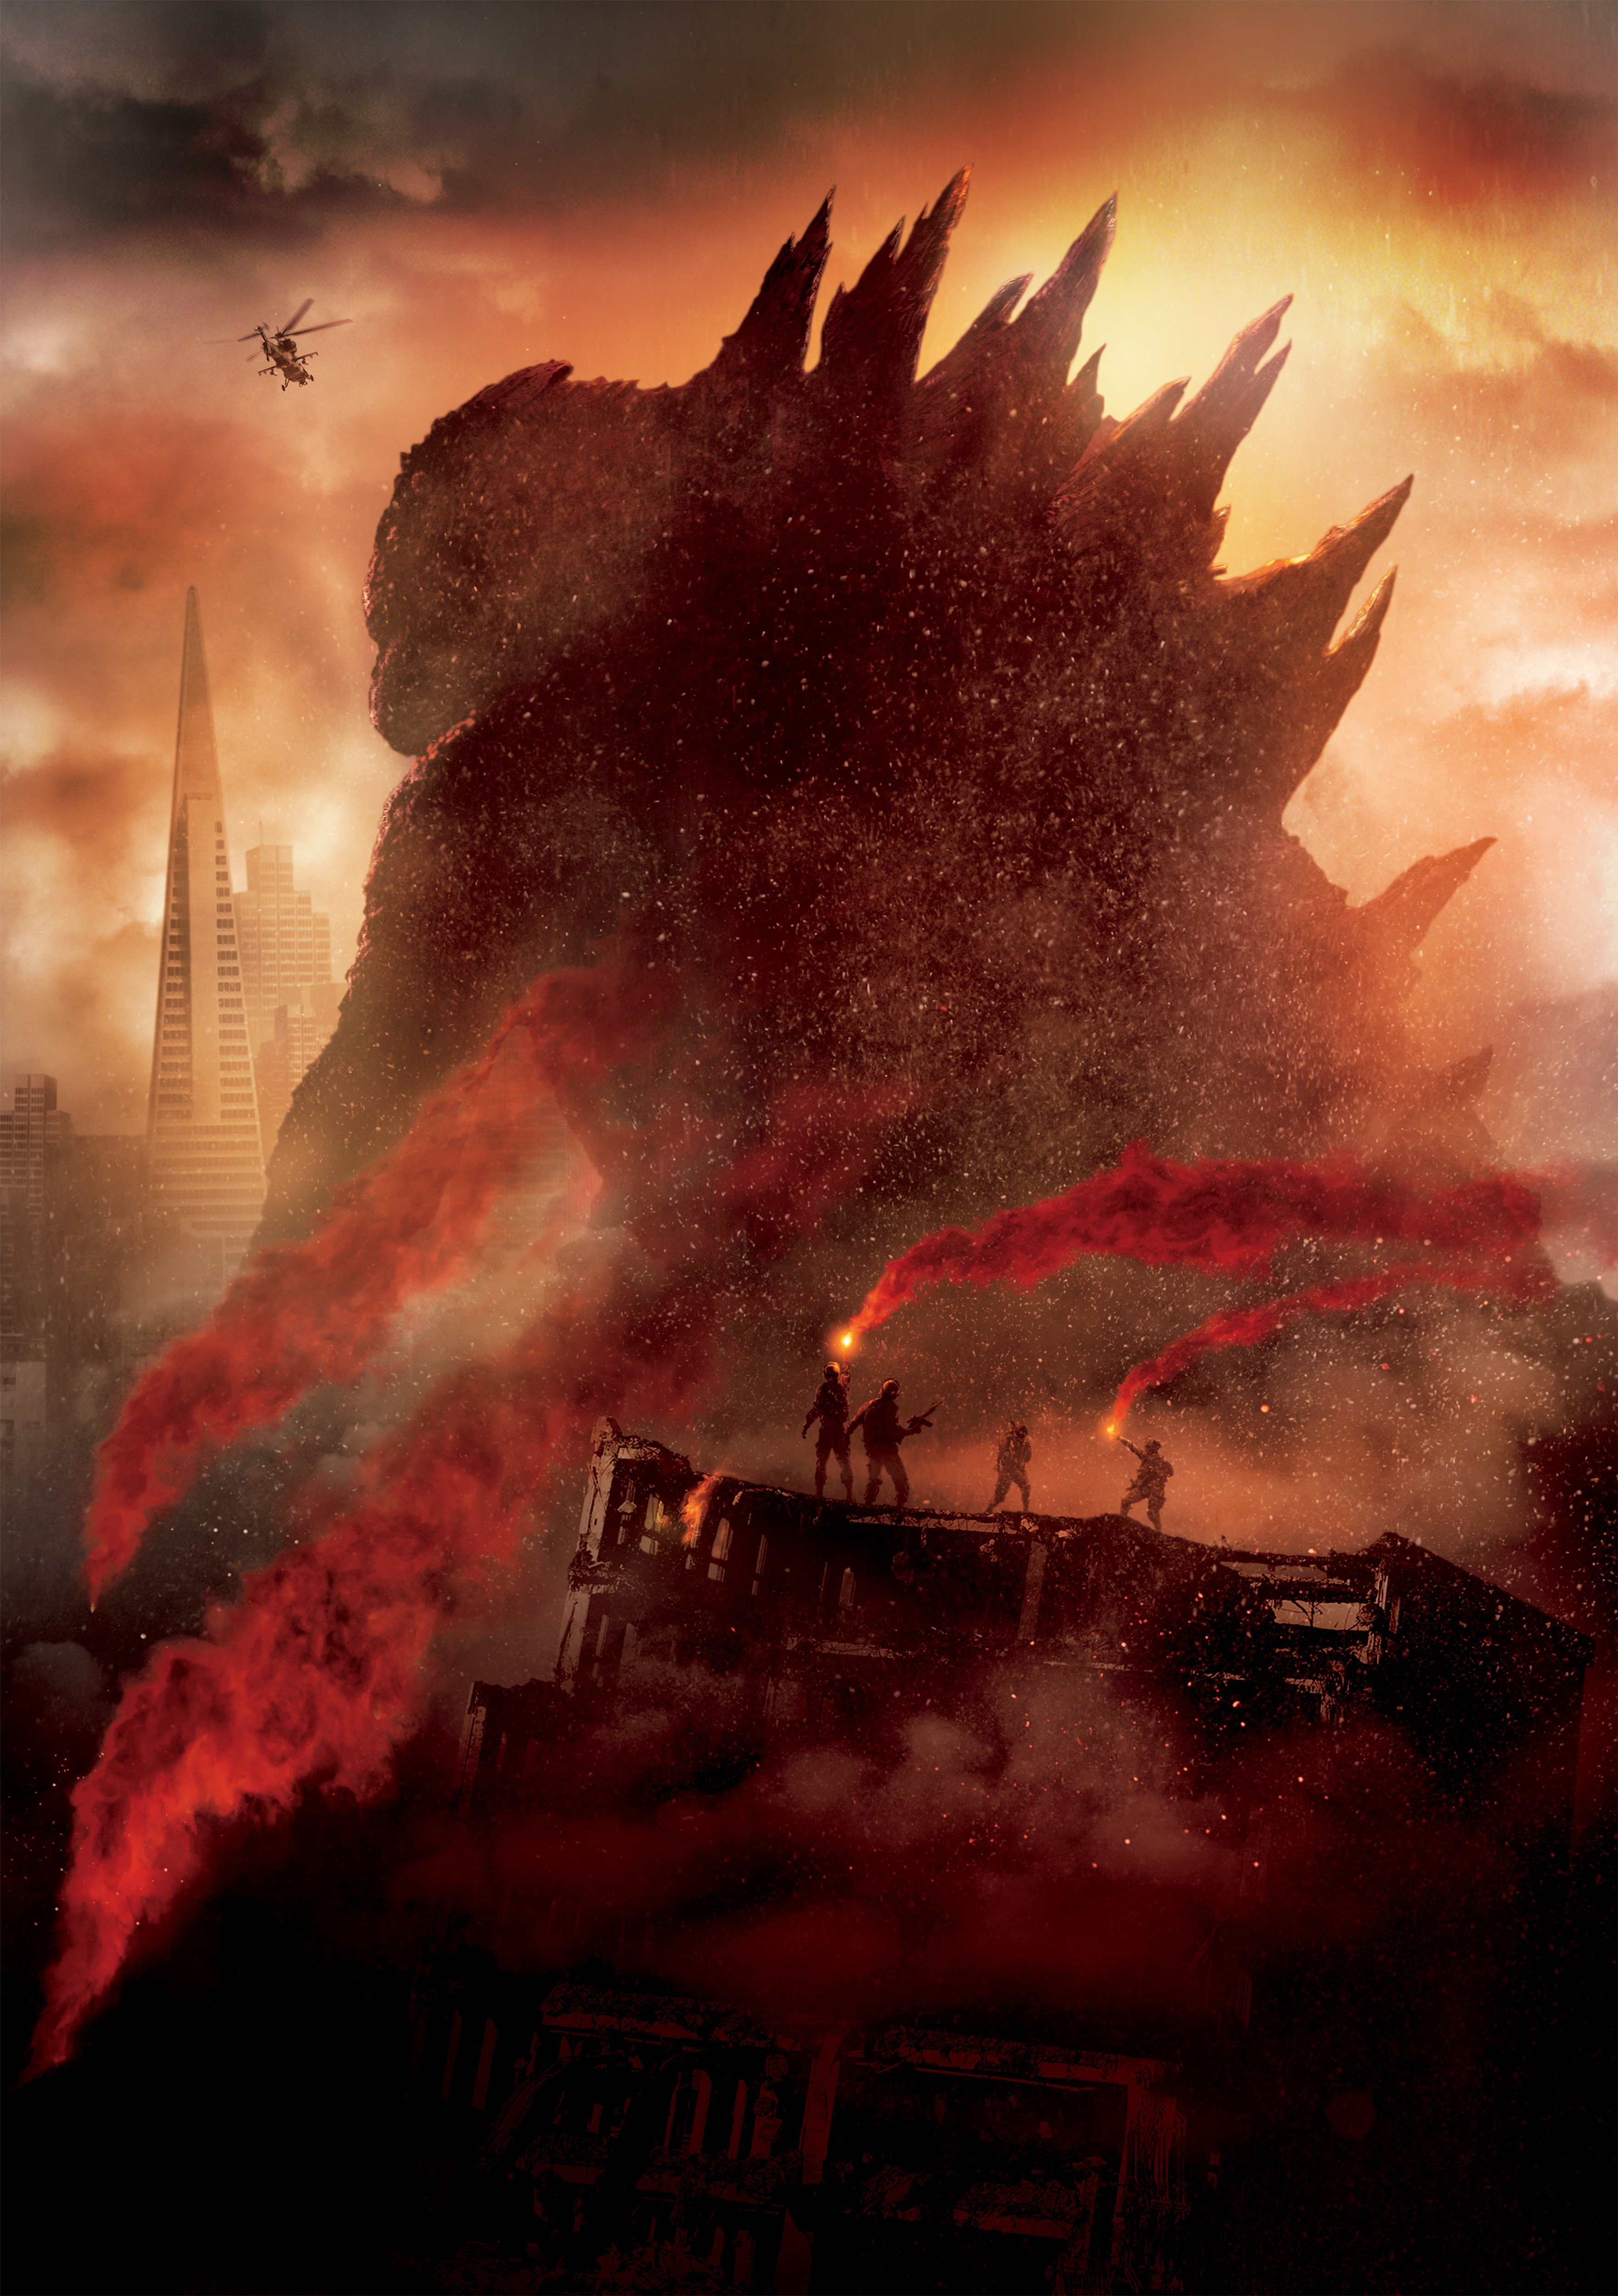 movie analysis gojira and american godzilla Godzilla earth (ゴジラ・アース gojira āsu), also simply known as godzilla much like the ones featured in the 2014 film, godzilla and the 2016 film, shin godzilla, features a new american: deathla: tristar pictures.